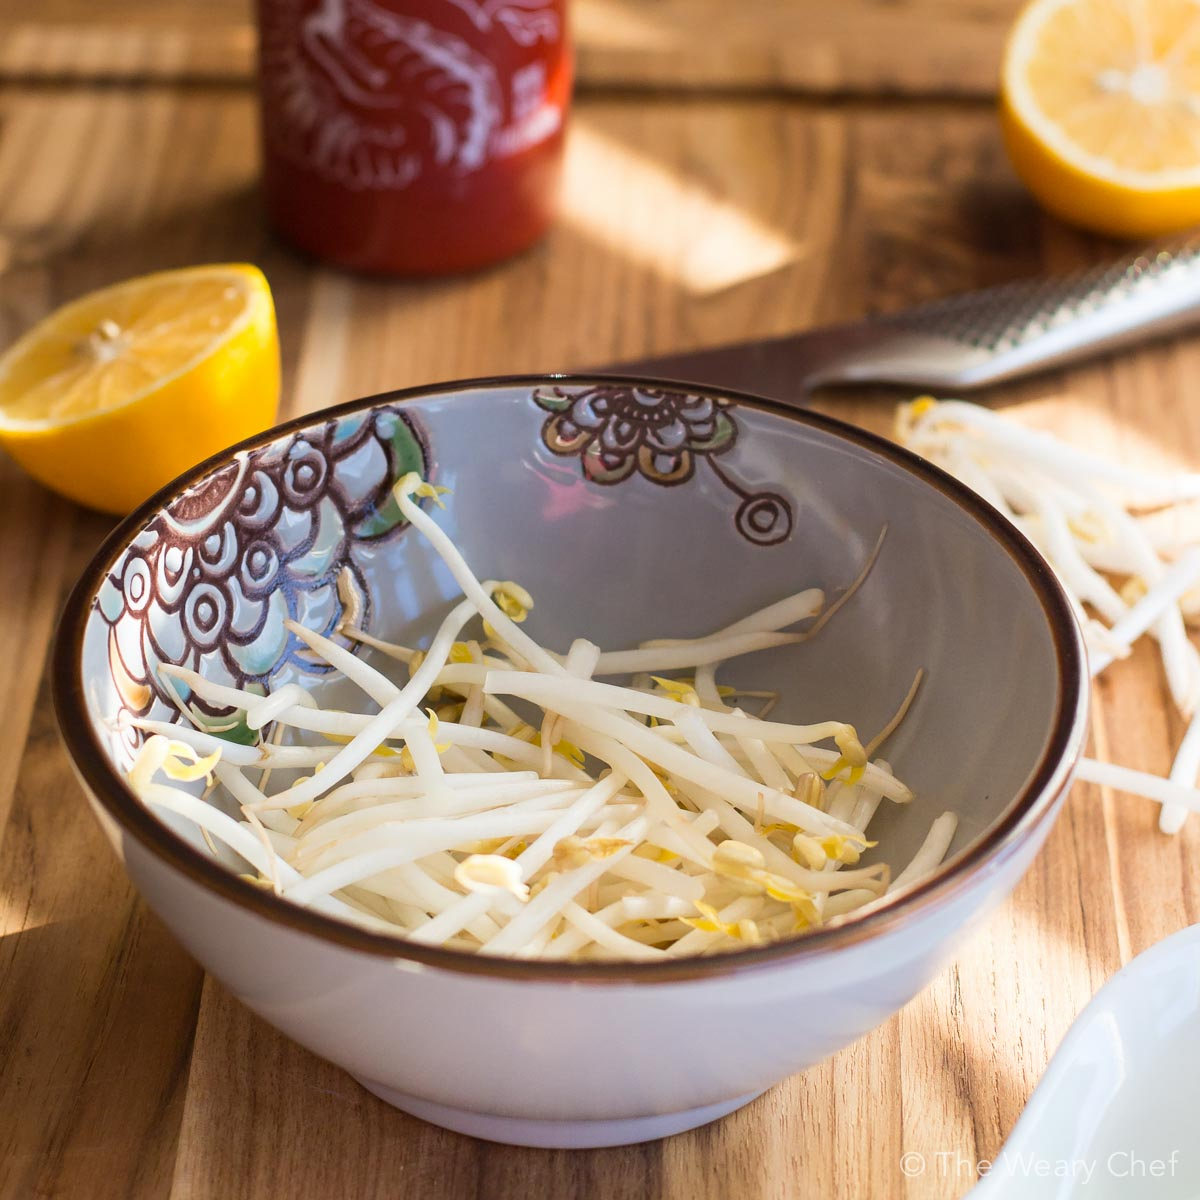 Serving soup over bean sprouts is a tasty and healthy alternative to noodles.